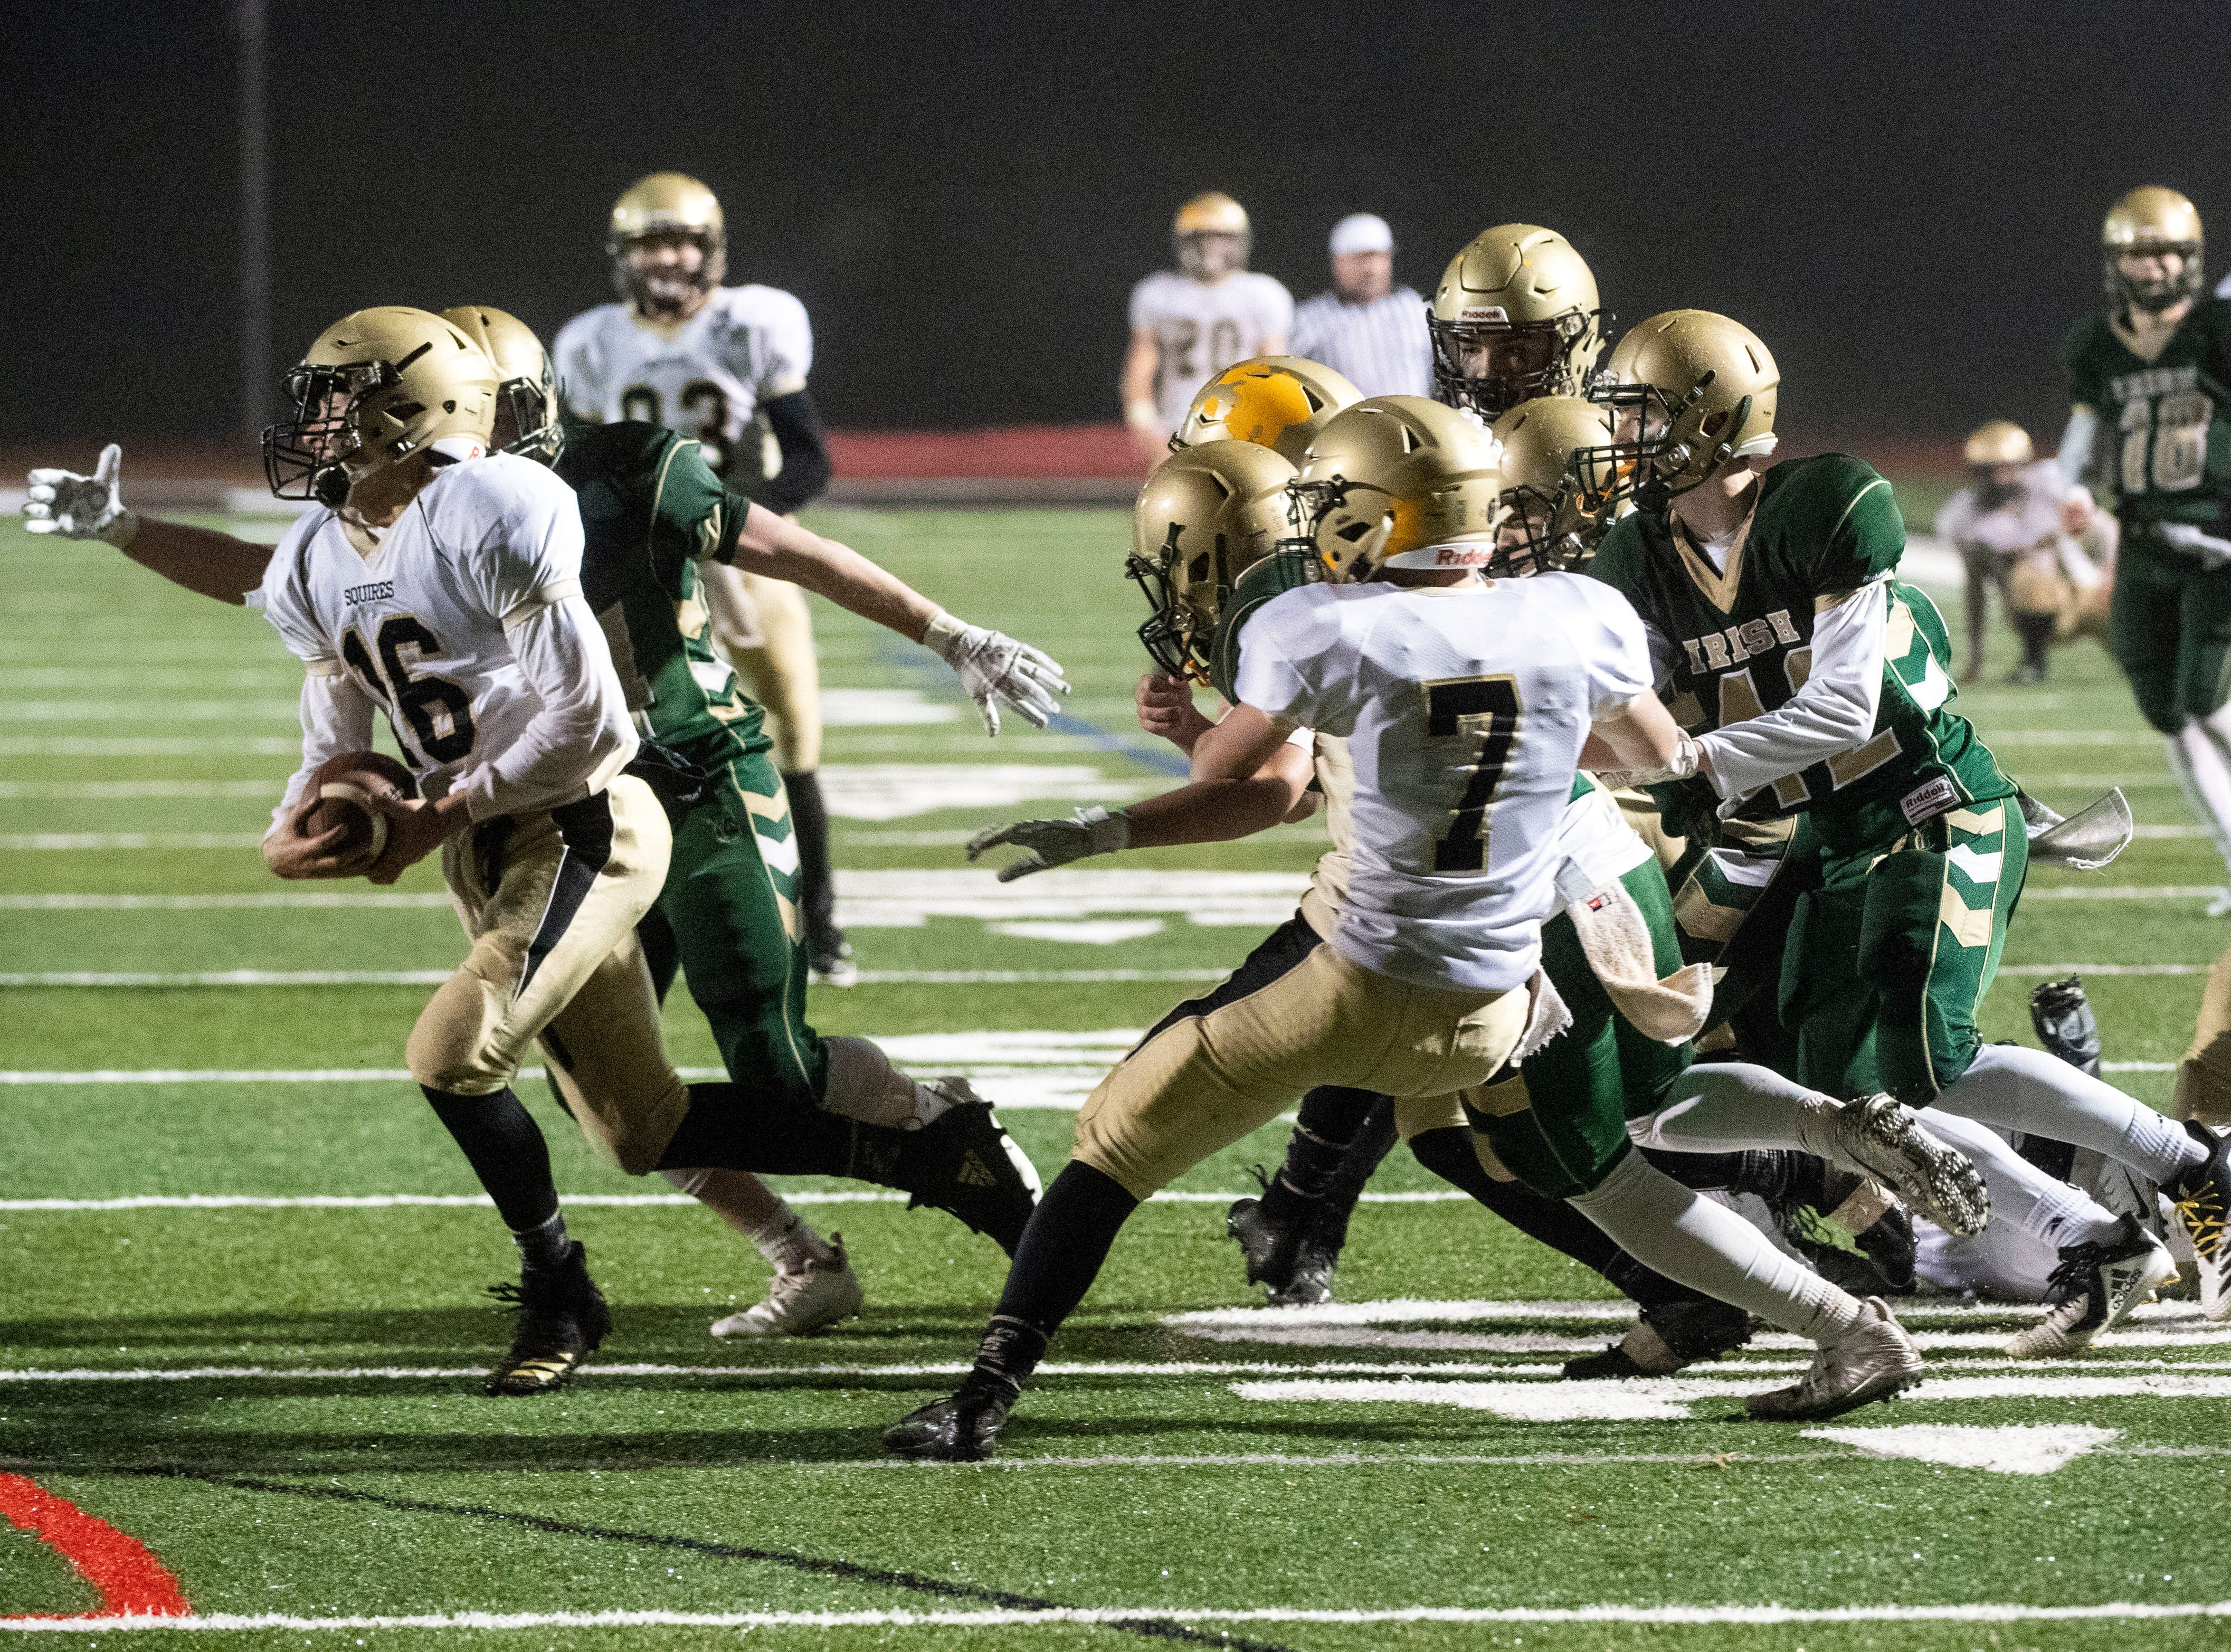 Delone Catholic's Evan Brady (16) runs across the field after coming up with an interception during the District III 2A championship game at South Western High School on Nov. 9, 2018. The York Catholic Fighting Irish beat the Delone Catholic Squires in overtime, 28-21.